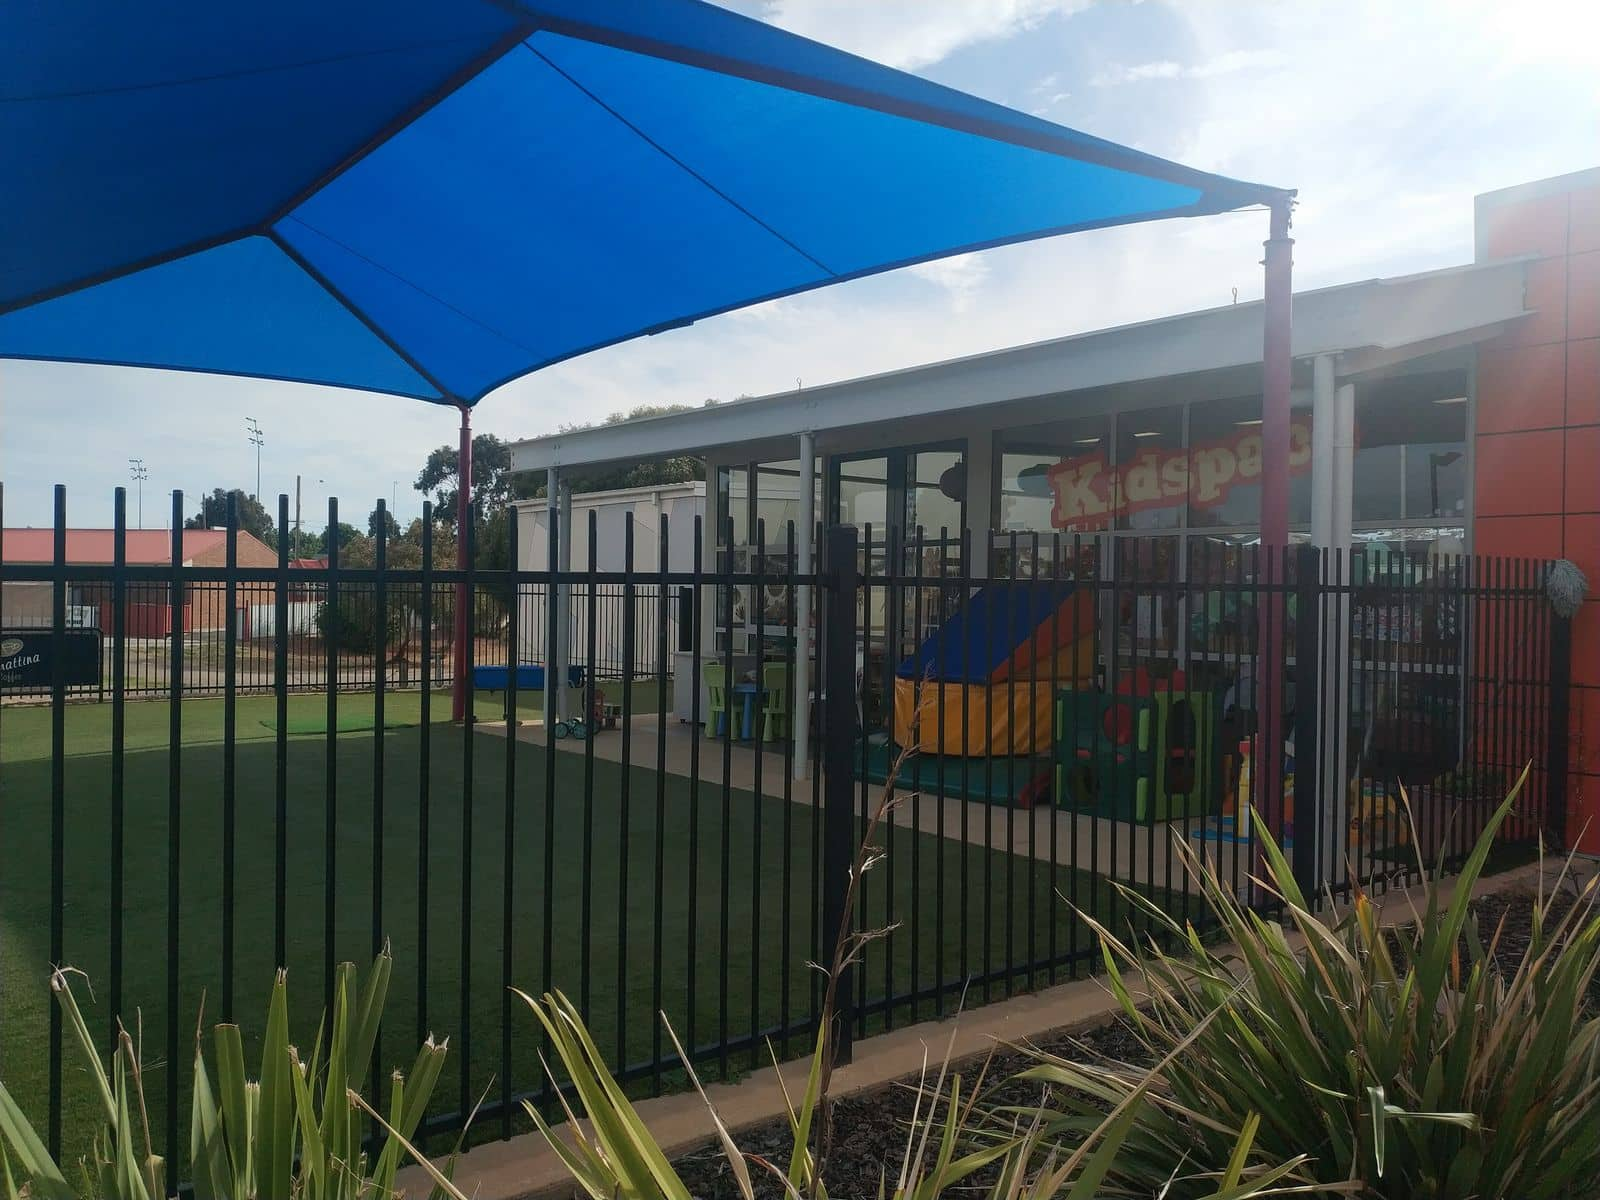 Horsham aquatic centre prices timetable opening hours - Horsham swimming pool opening times ...